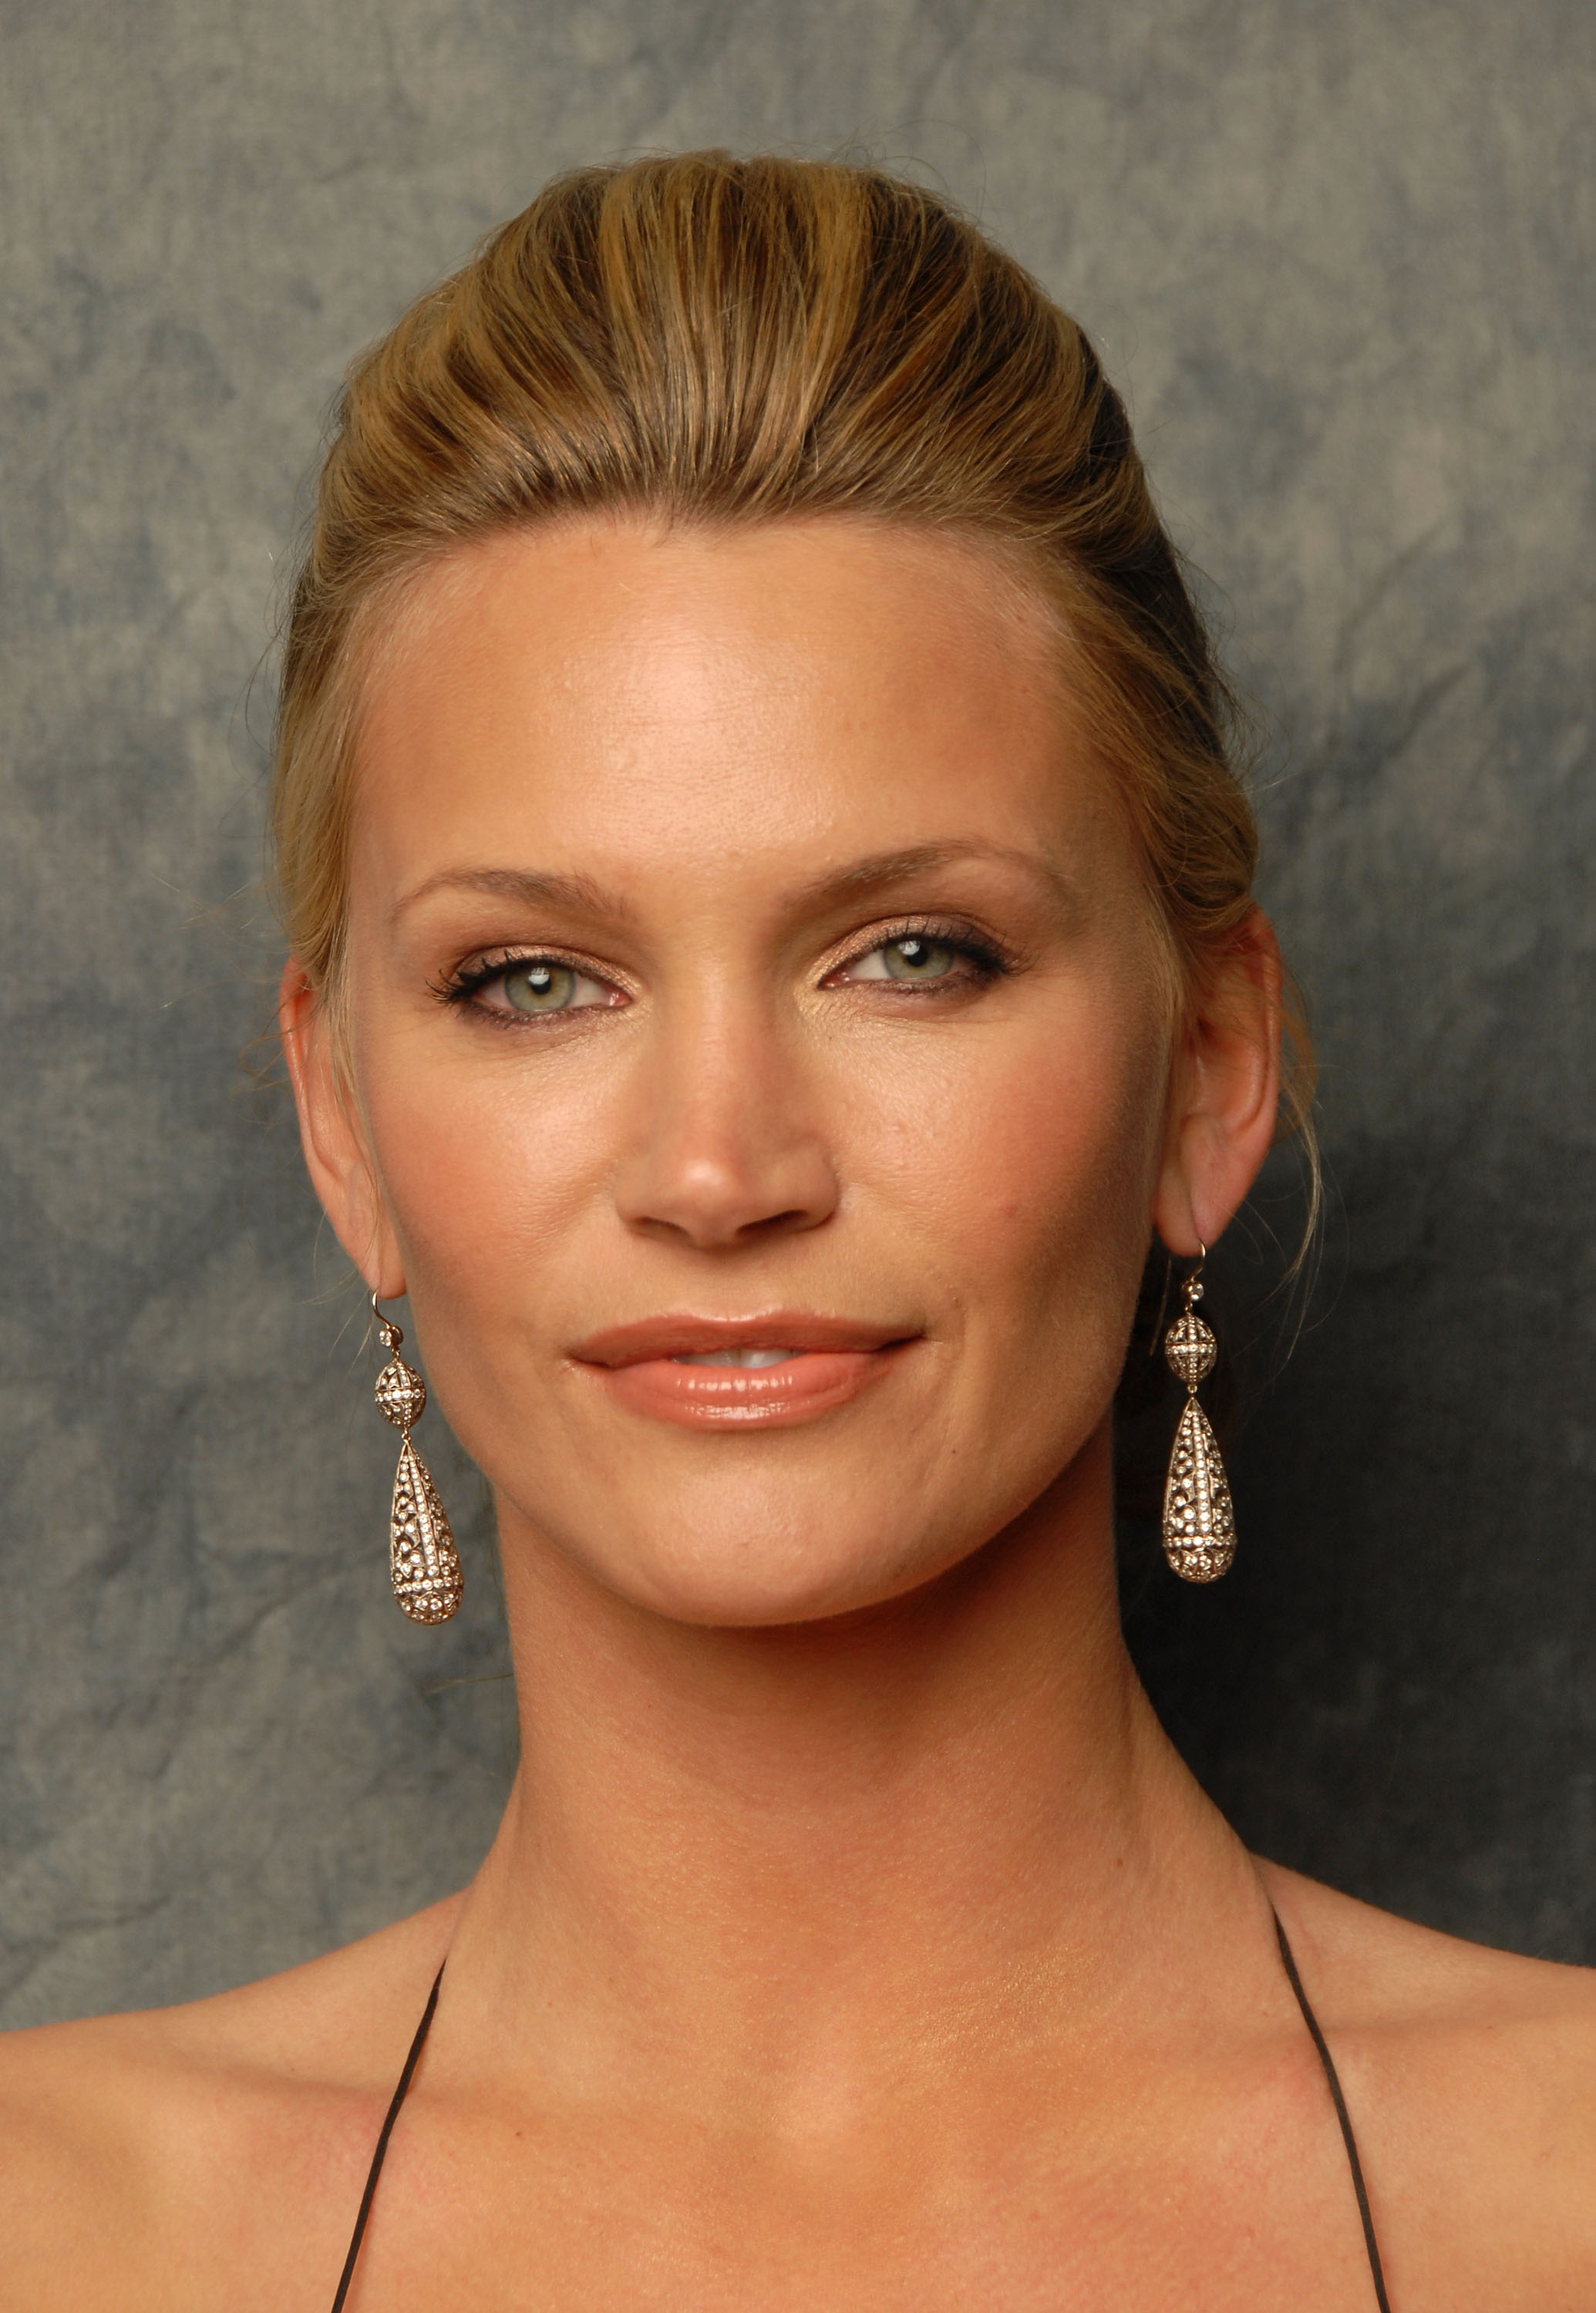 Wallpapers Category Best Natasha Henstridge Photo Colection